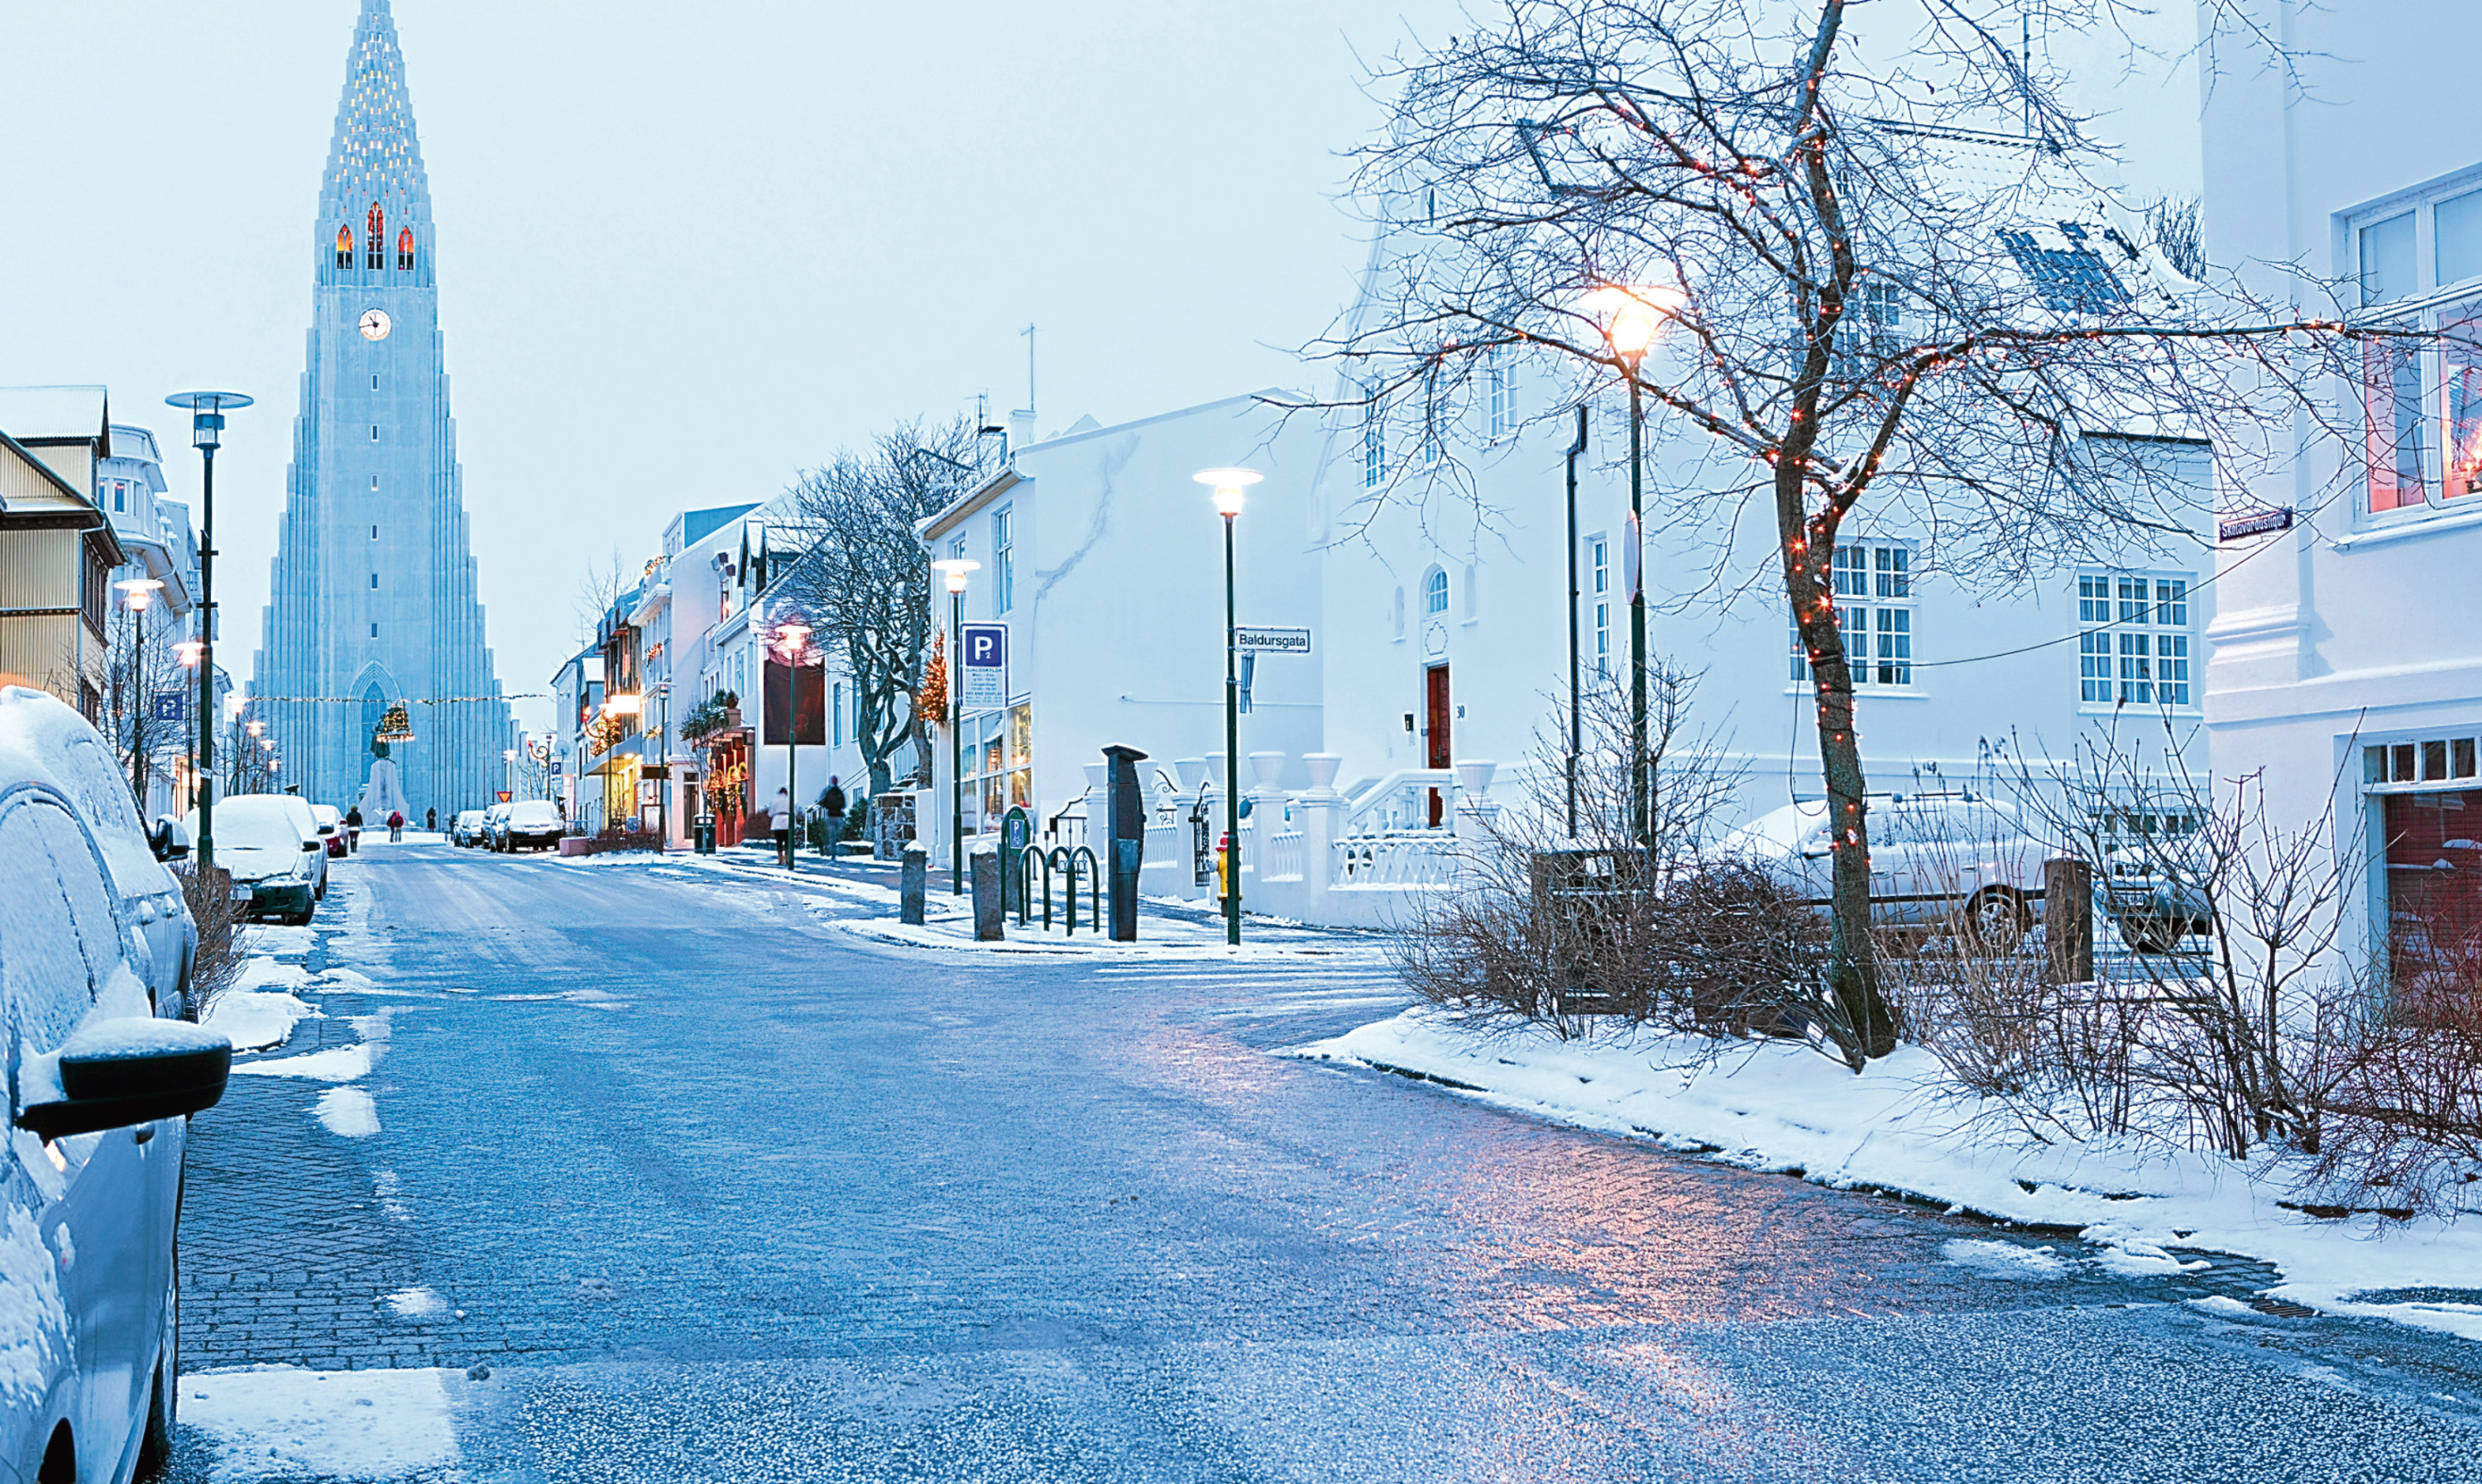 Dusk falls on a winter afternoon in Reykjavik, capital of Iceland.